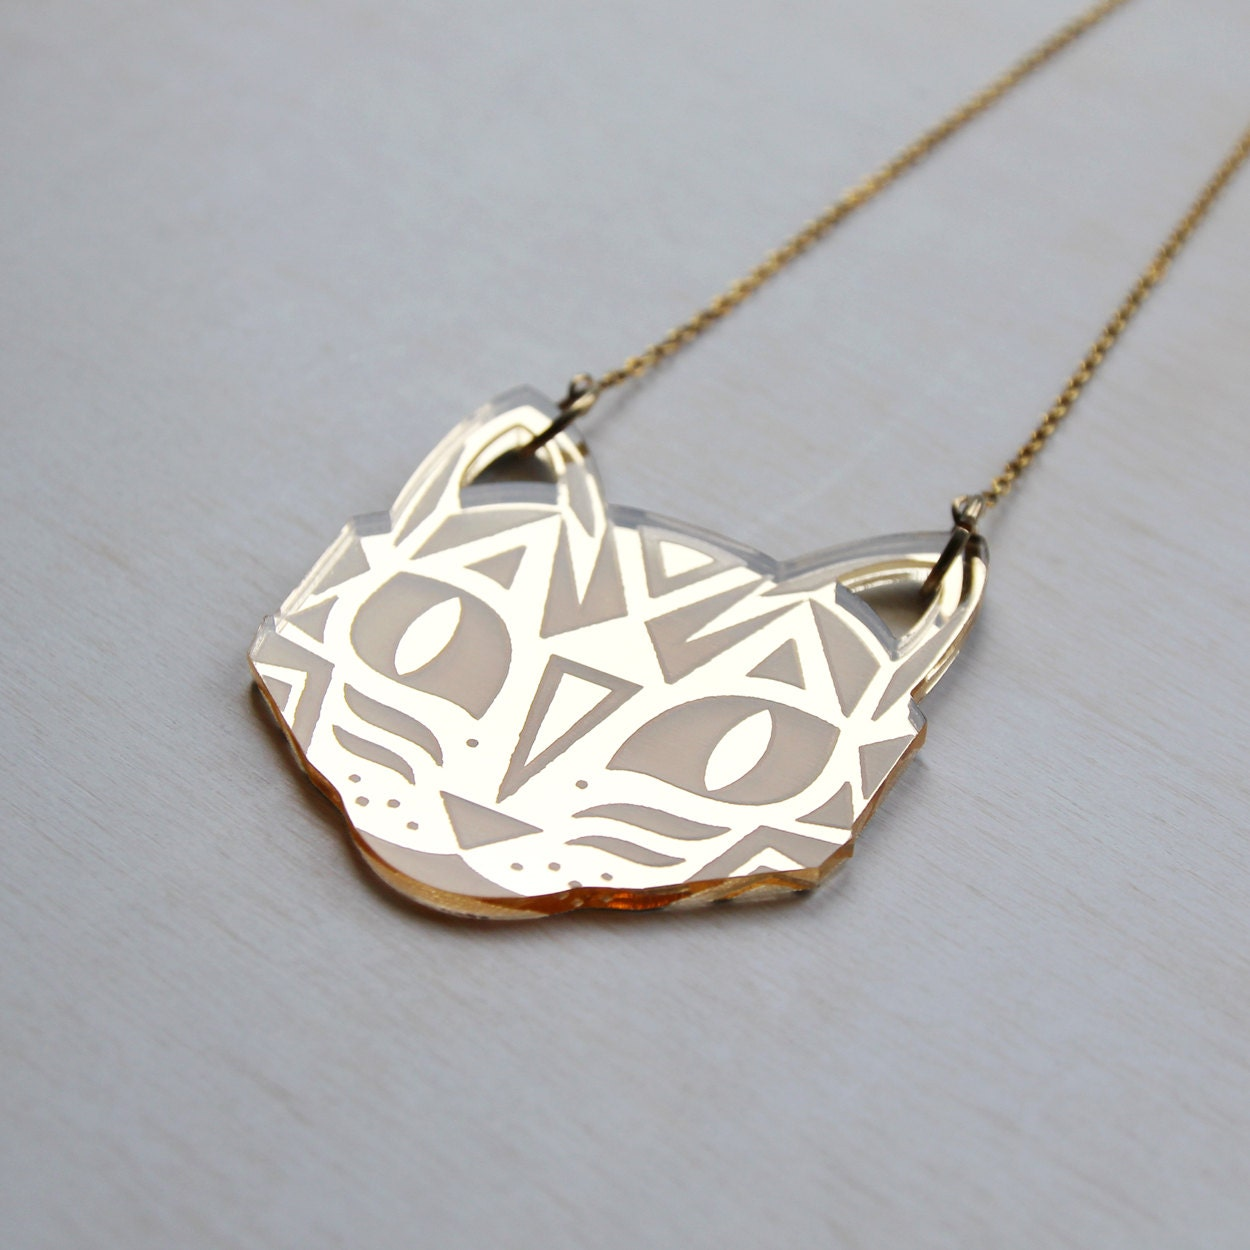 Laser Engraved Gold Mirror Acrylic Cat Face Pendant Necklace